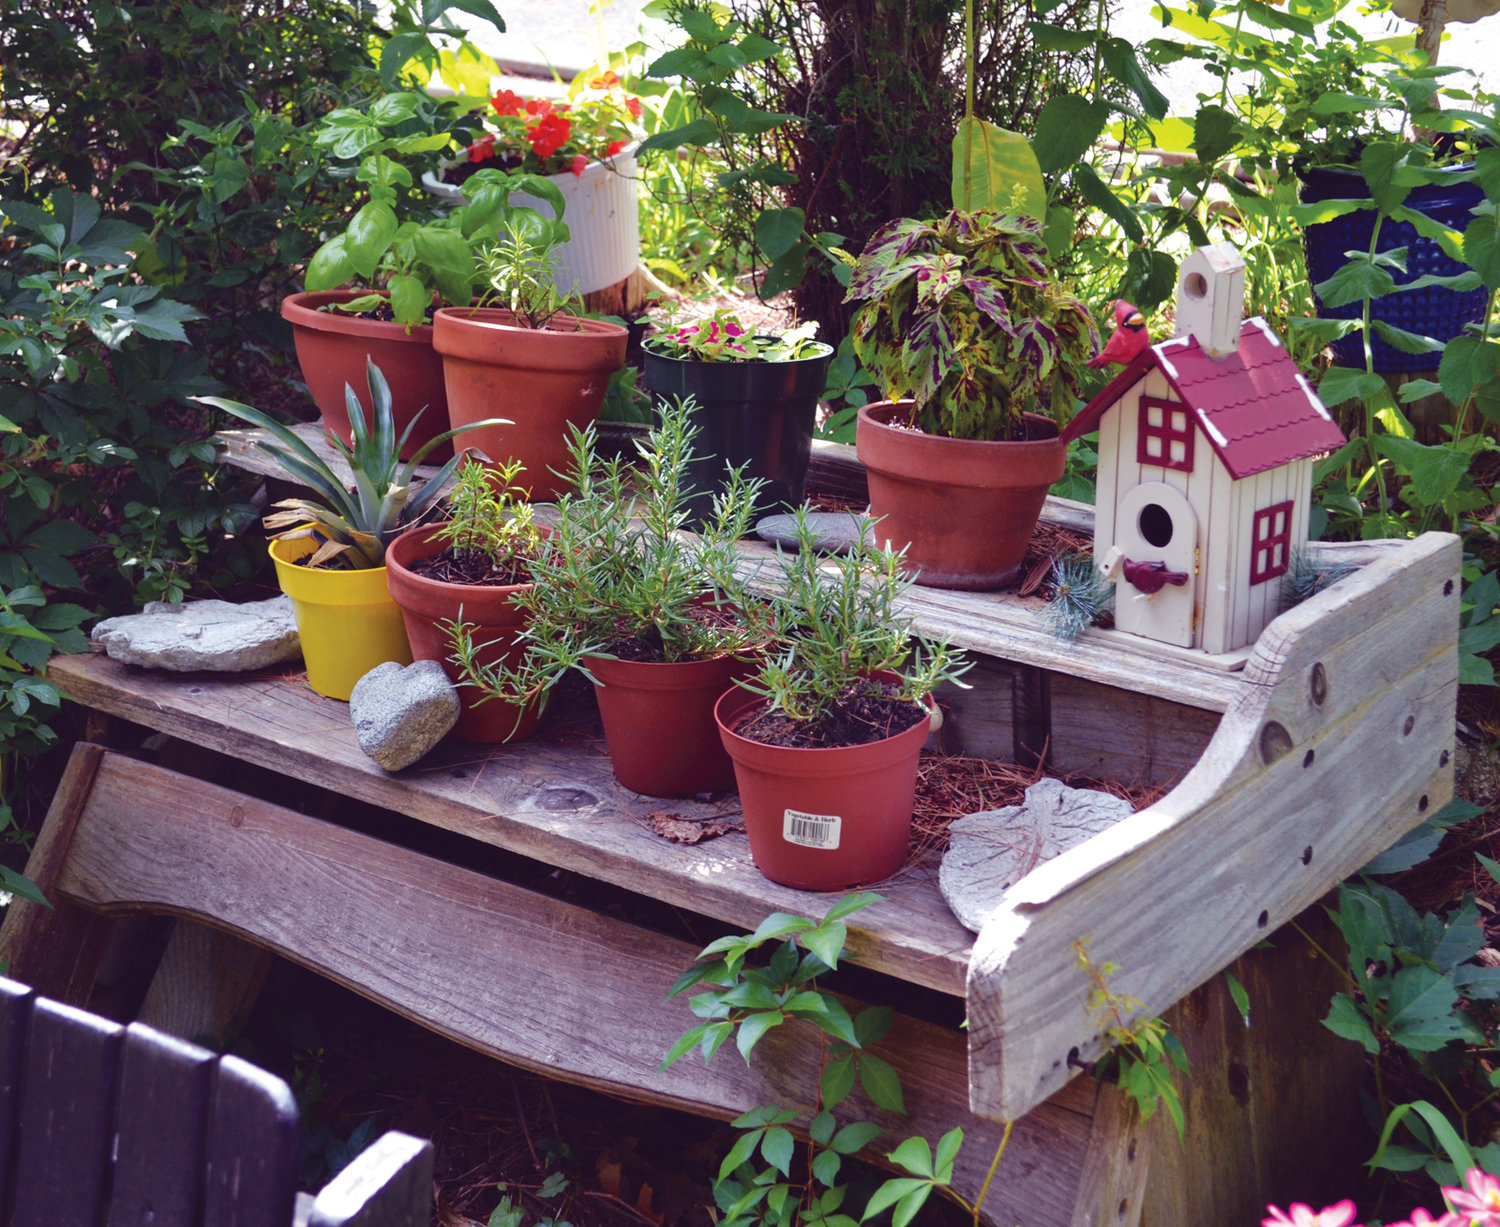 Potted plants on a workbench in Karen's garden.